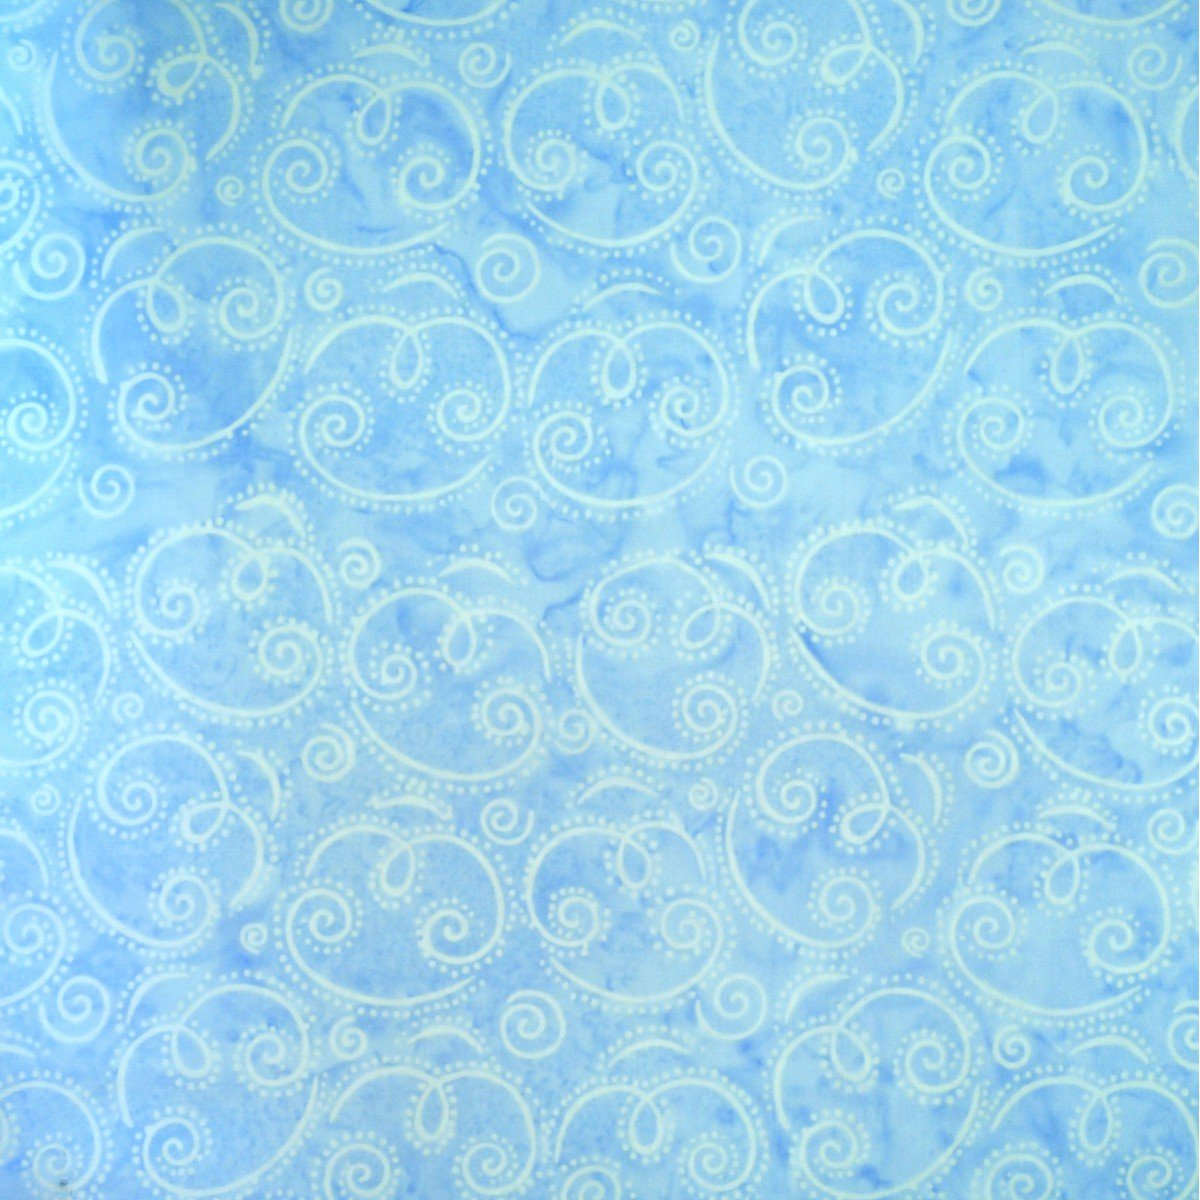 Batik By Mirah Hemp Blue